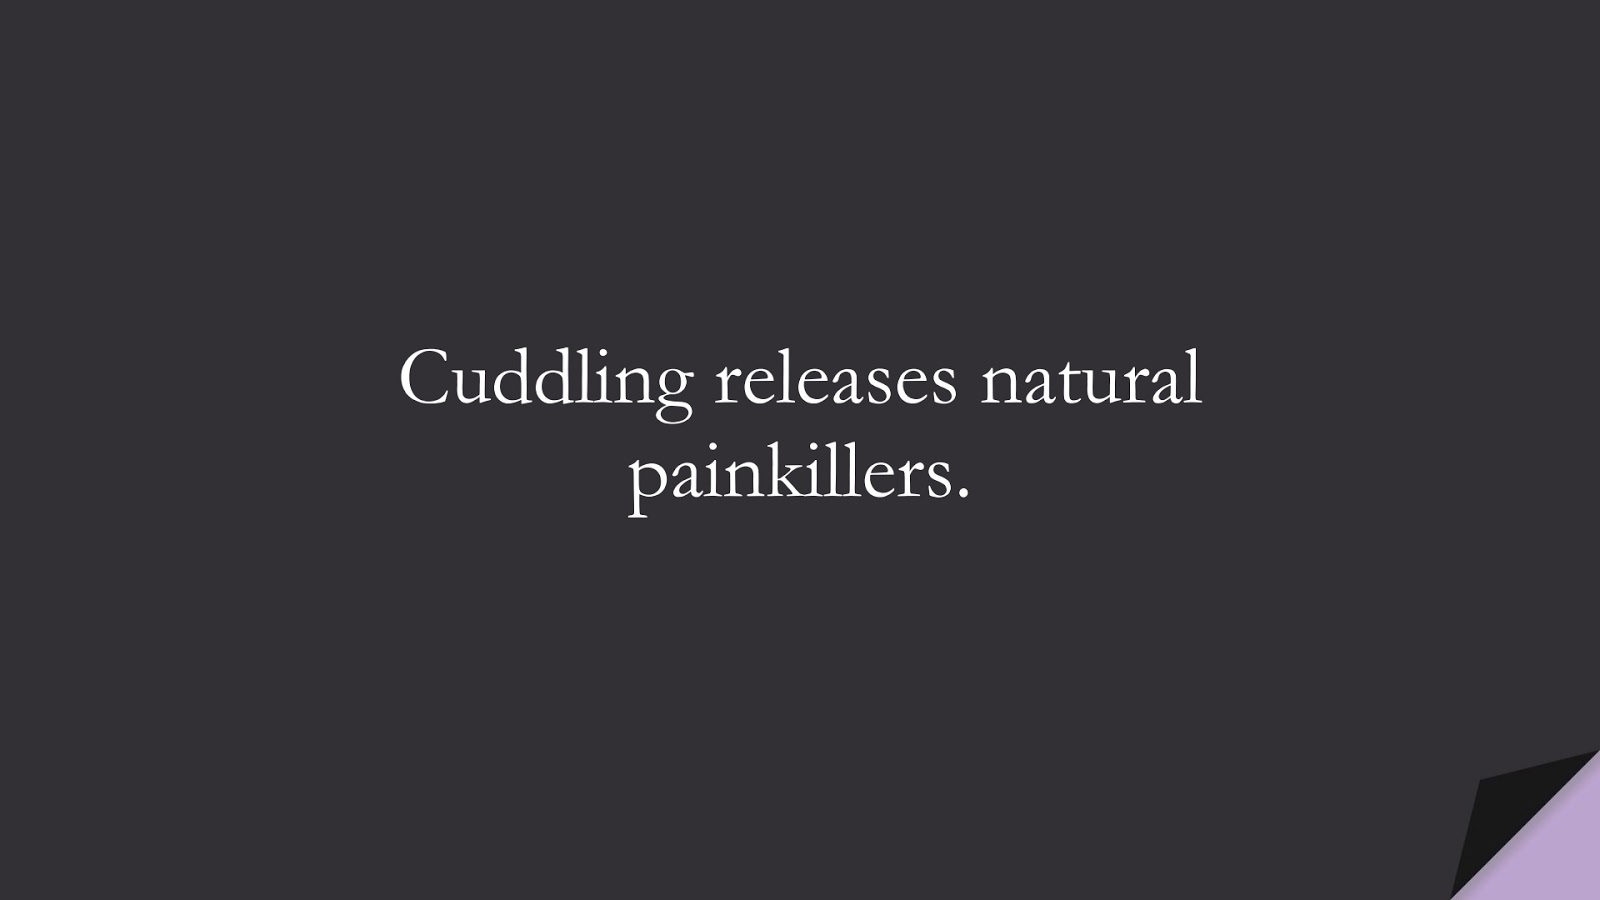 Cuddling releases natural painkillers.FALSE